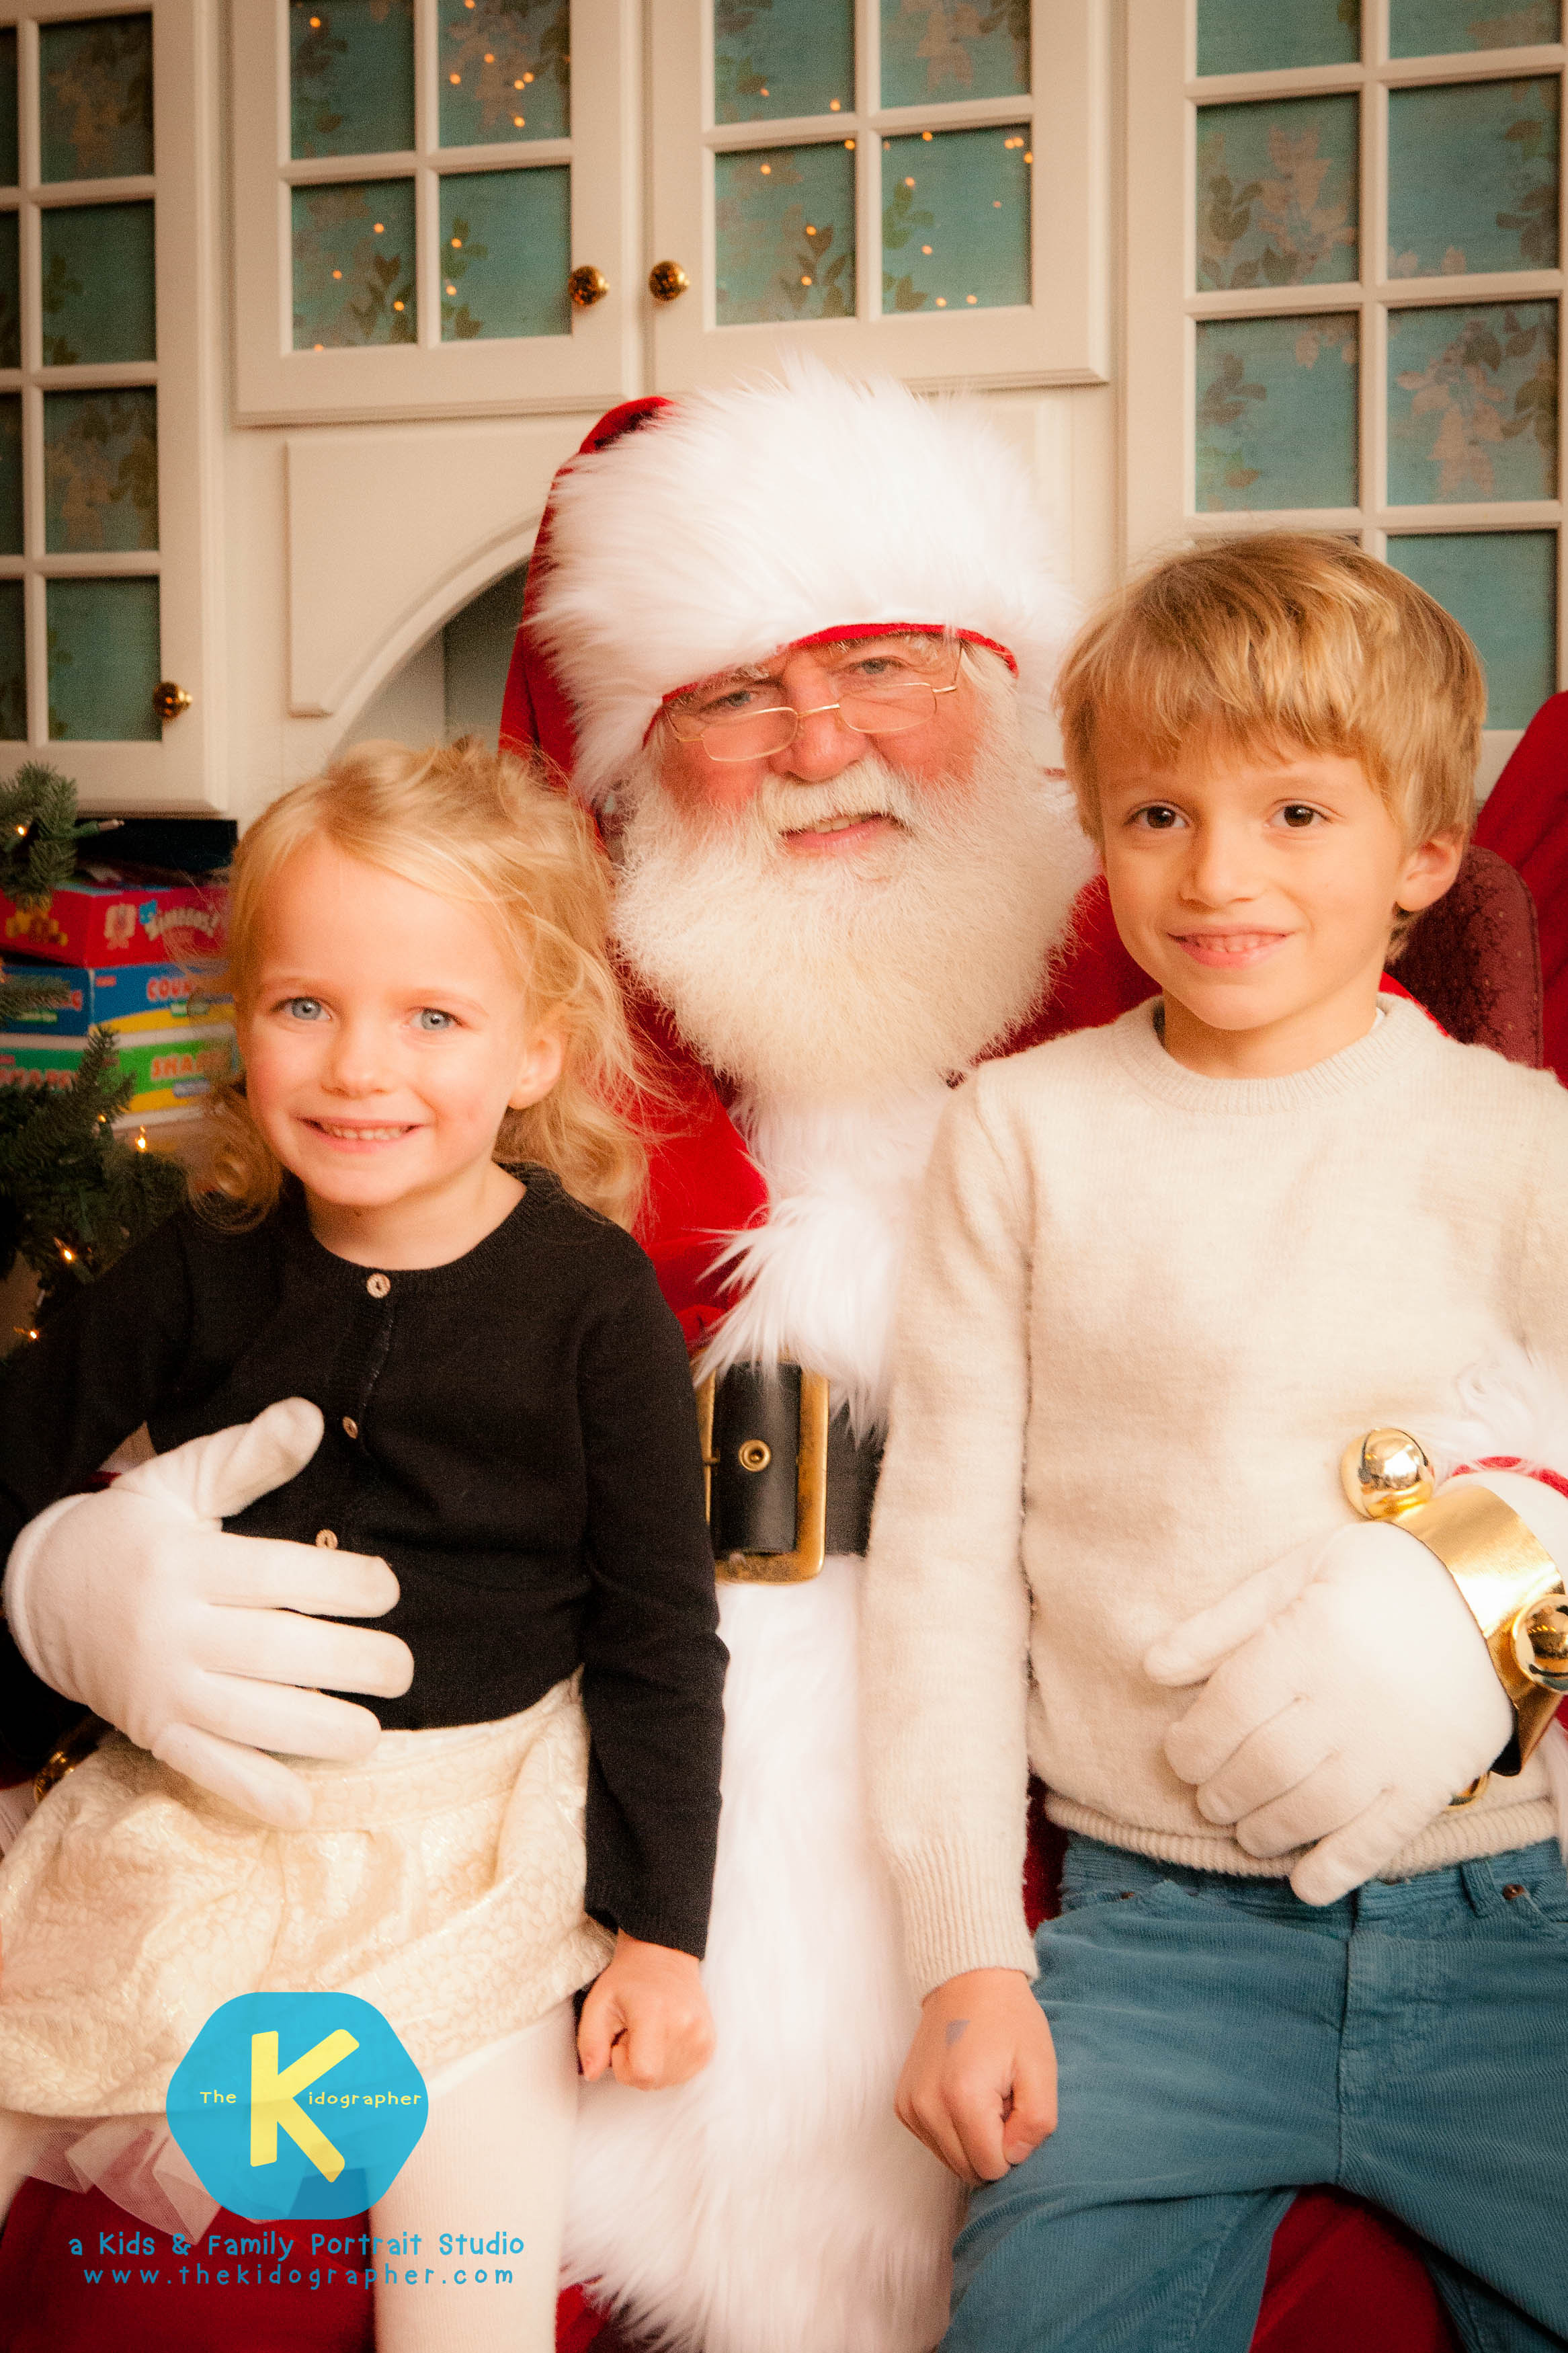 THE_KIDOGRAPHER_PHOTOS_WITH_SANTA-19.jpg